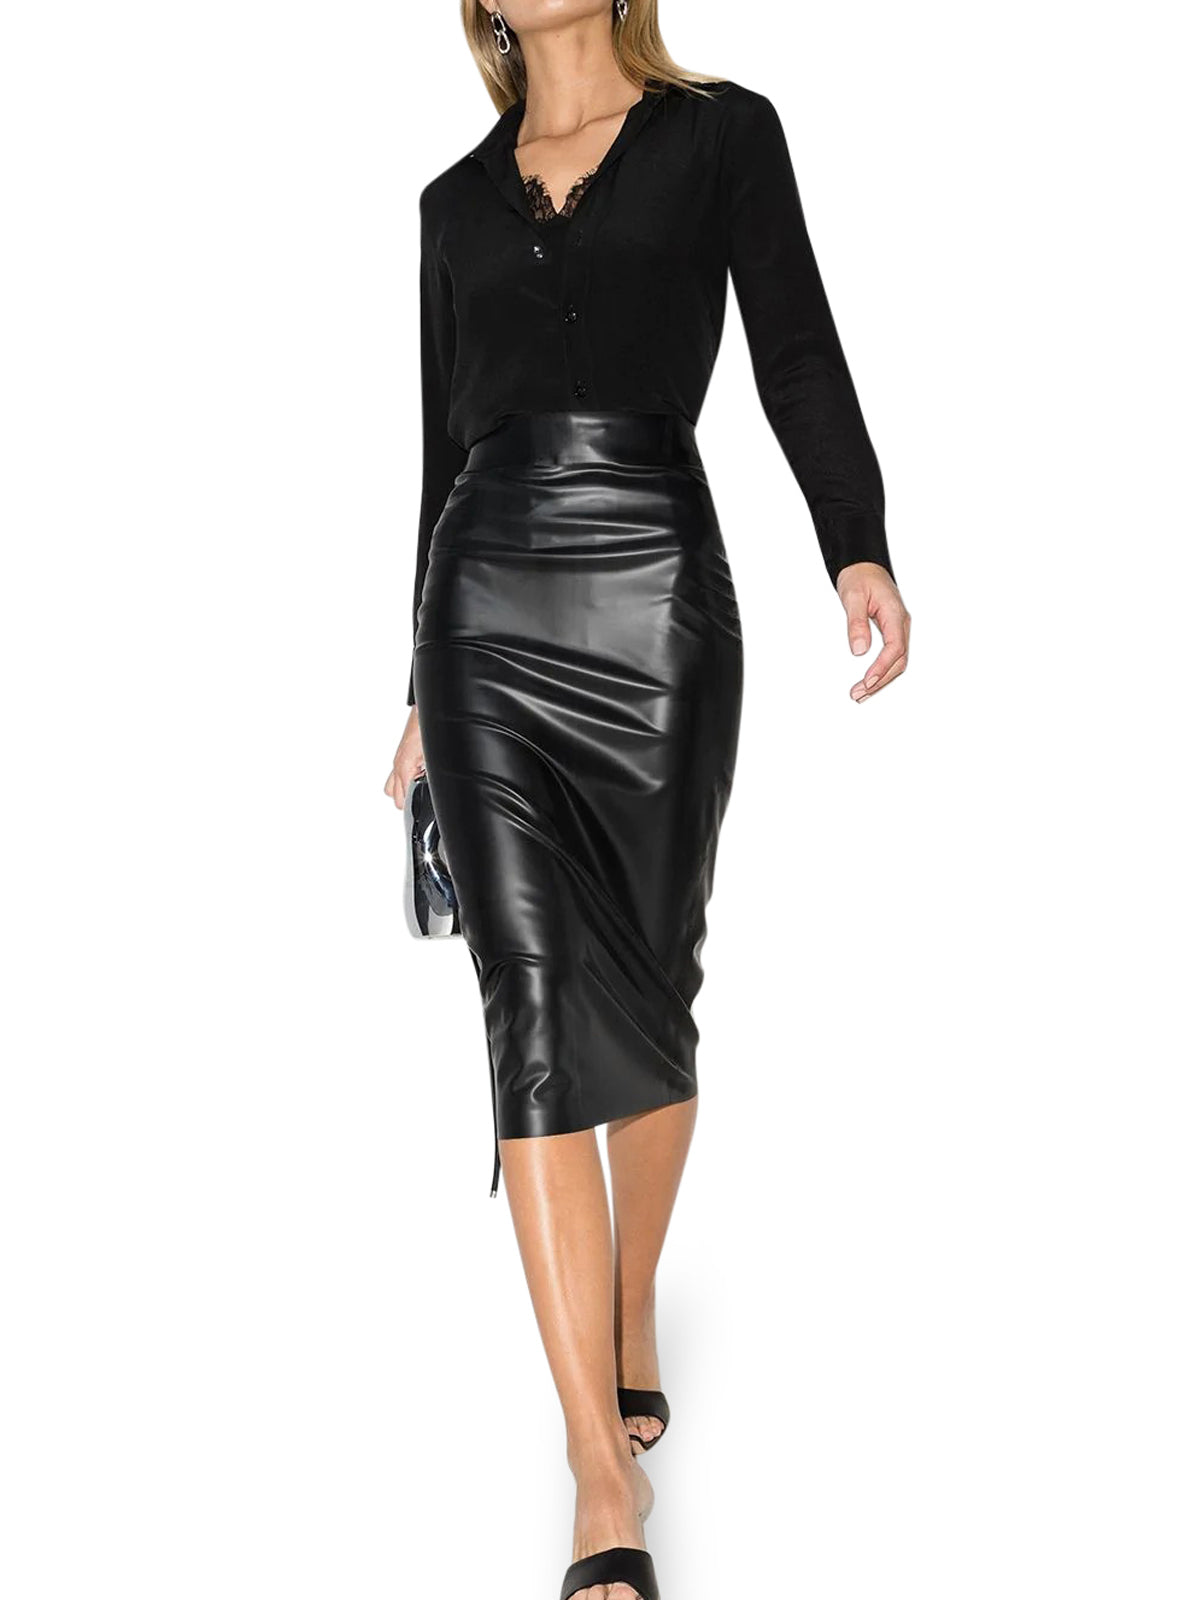 latex-style pencil skirt